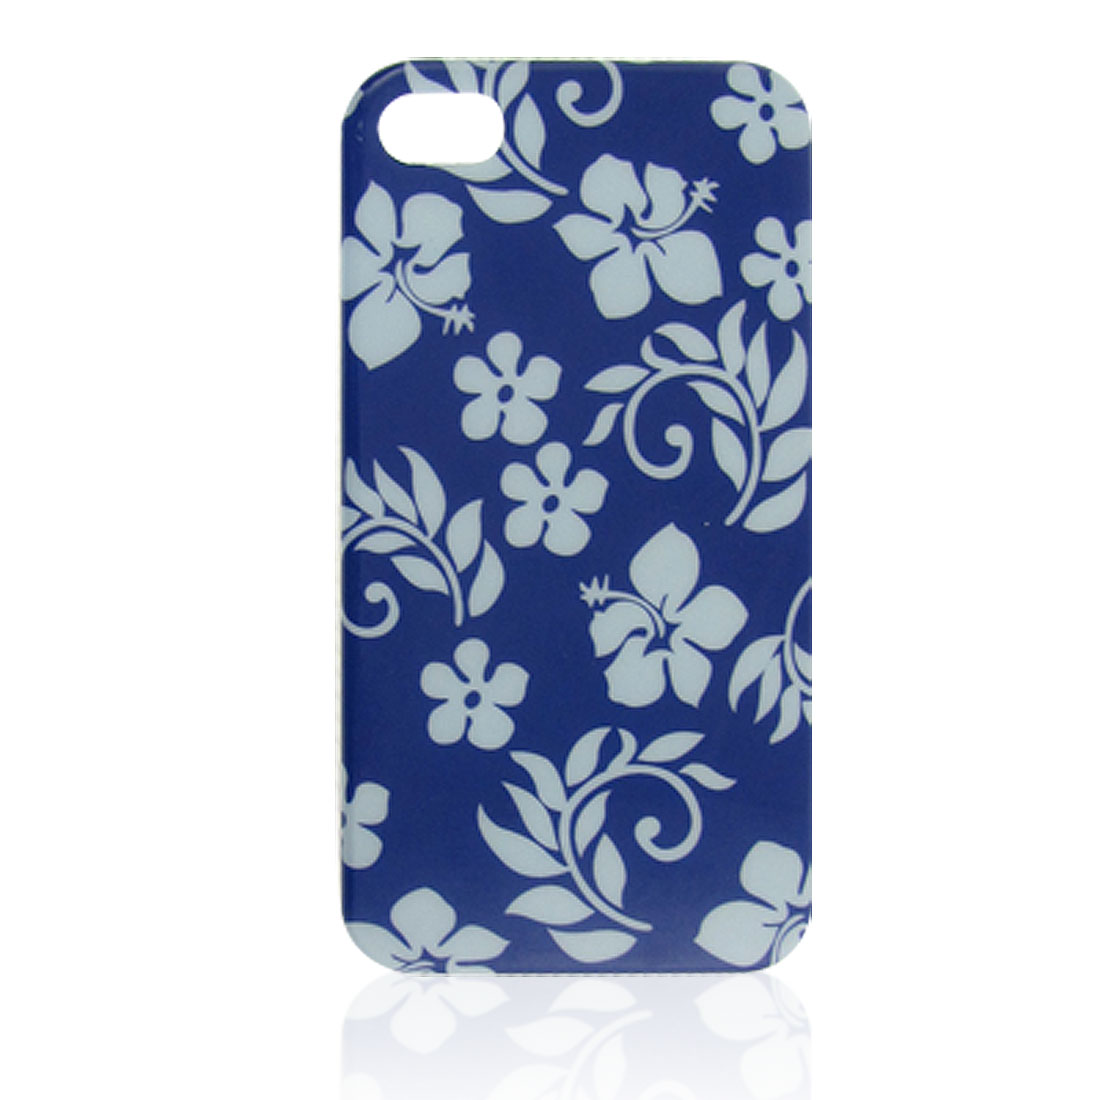 Blue Plastic Tree Branch Flower Pattern IMD Shell Back Case for iPhone 4 4G 4S